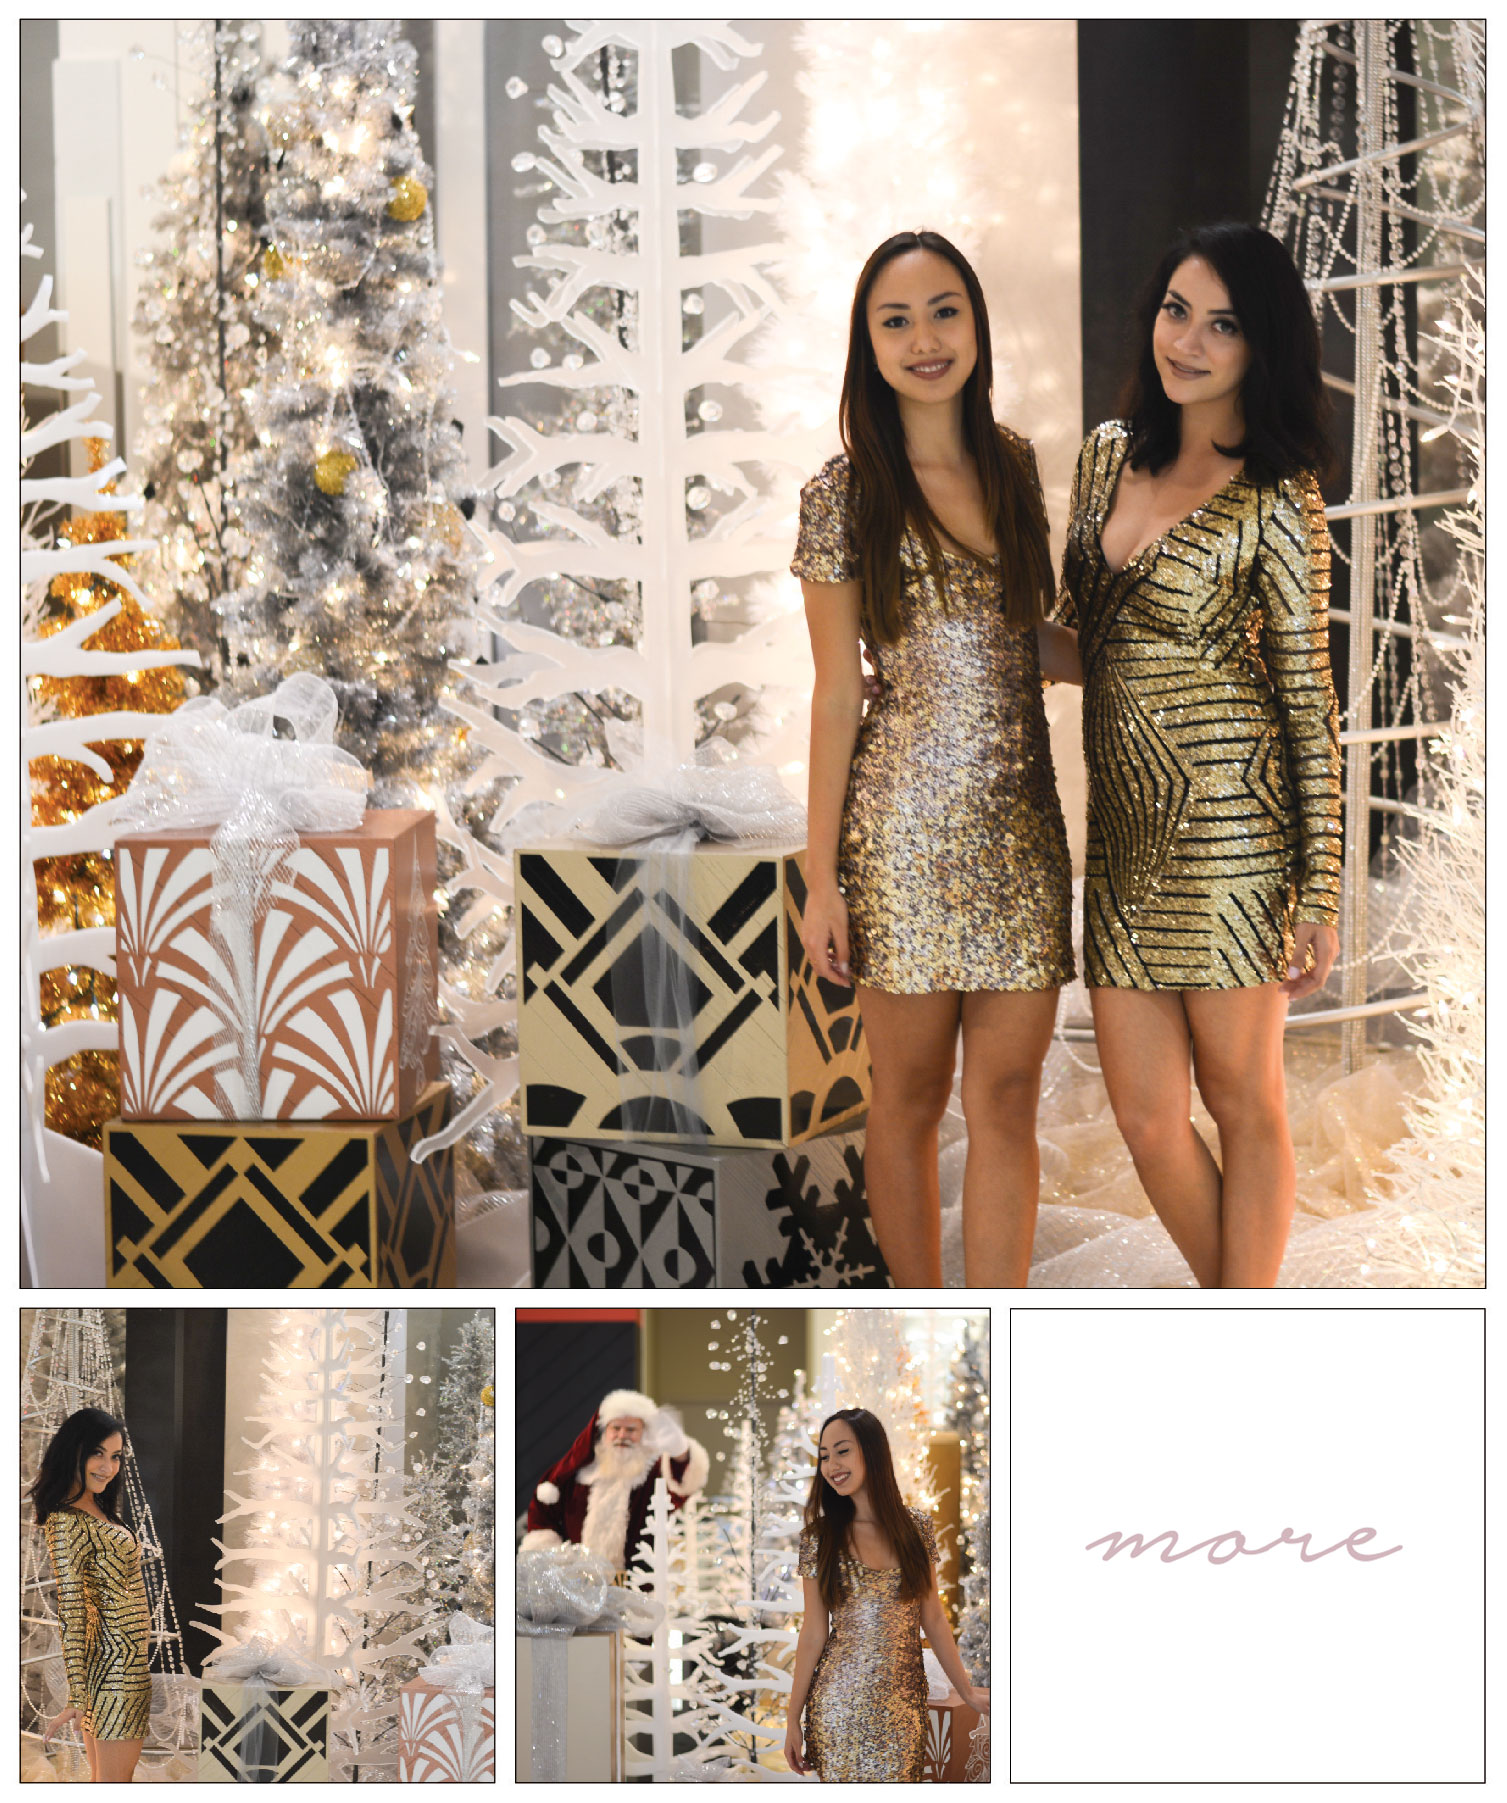 We love the holidays (who doesn't?)! It's the perfect time to buy a fun, new outfit, or bring out those glamorous sequins dresses. Click on more for the details!